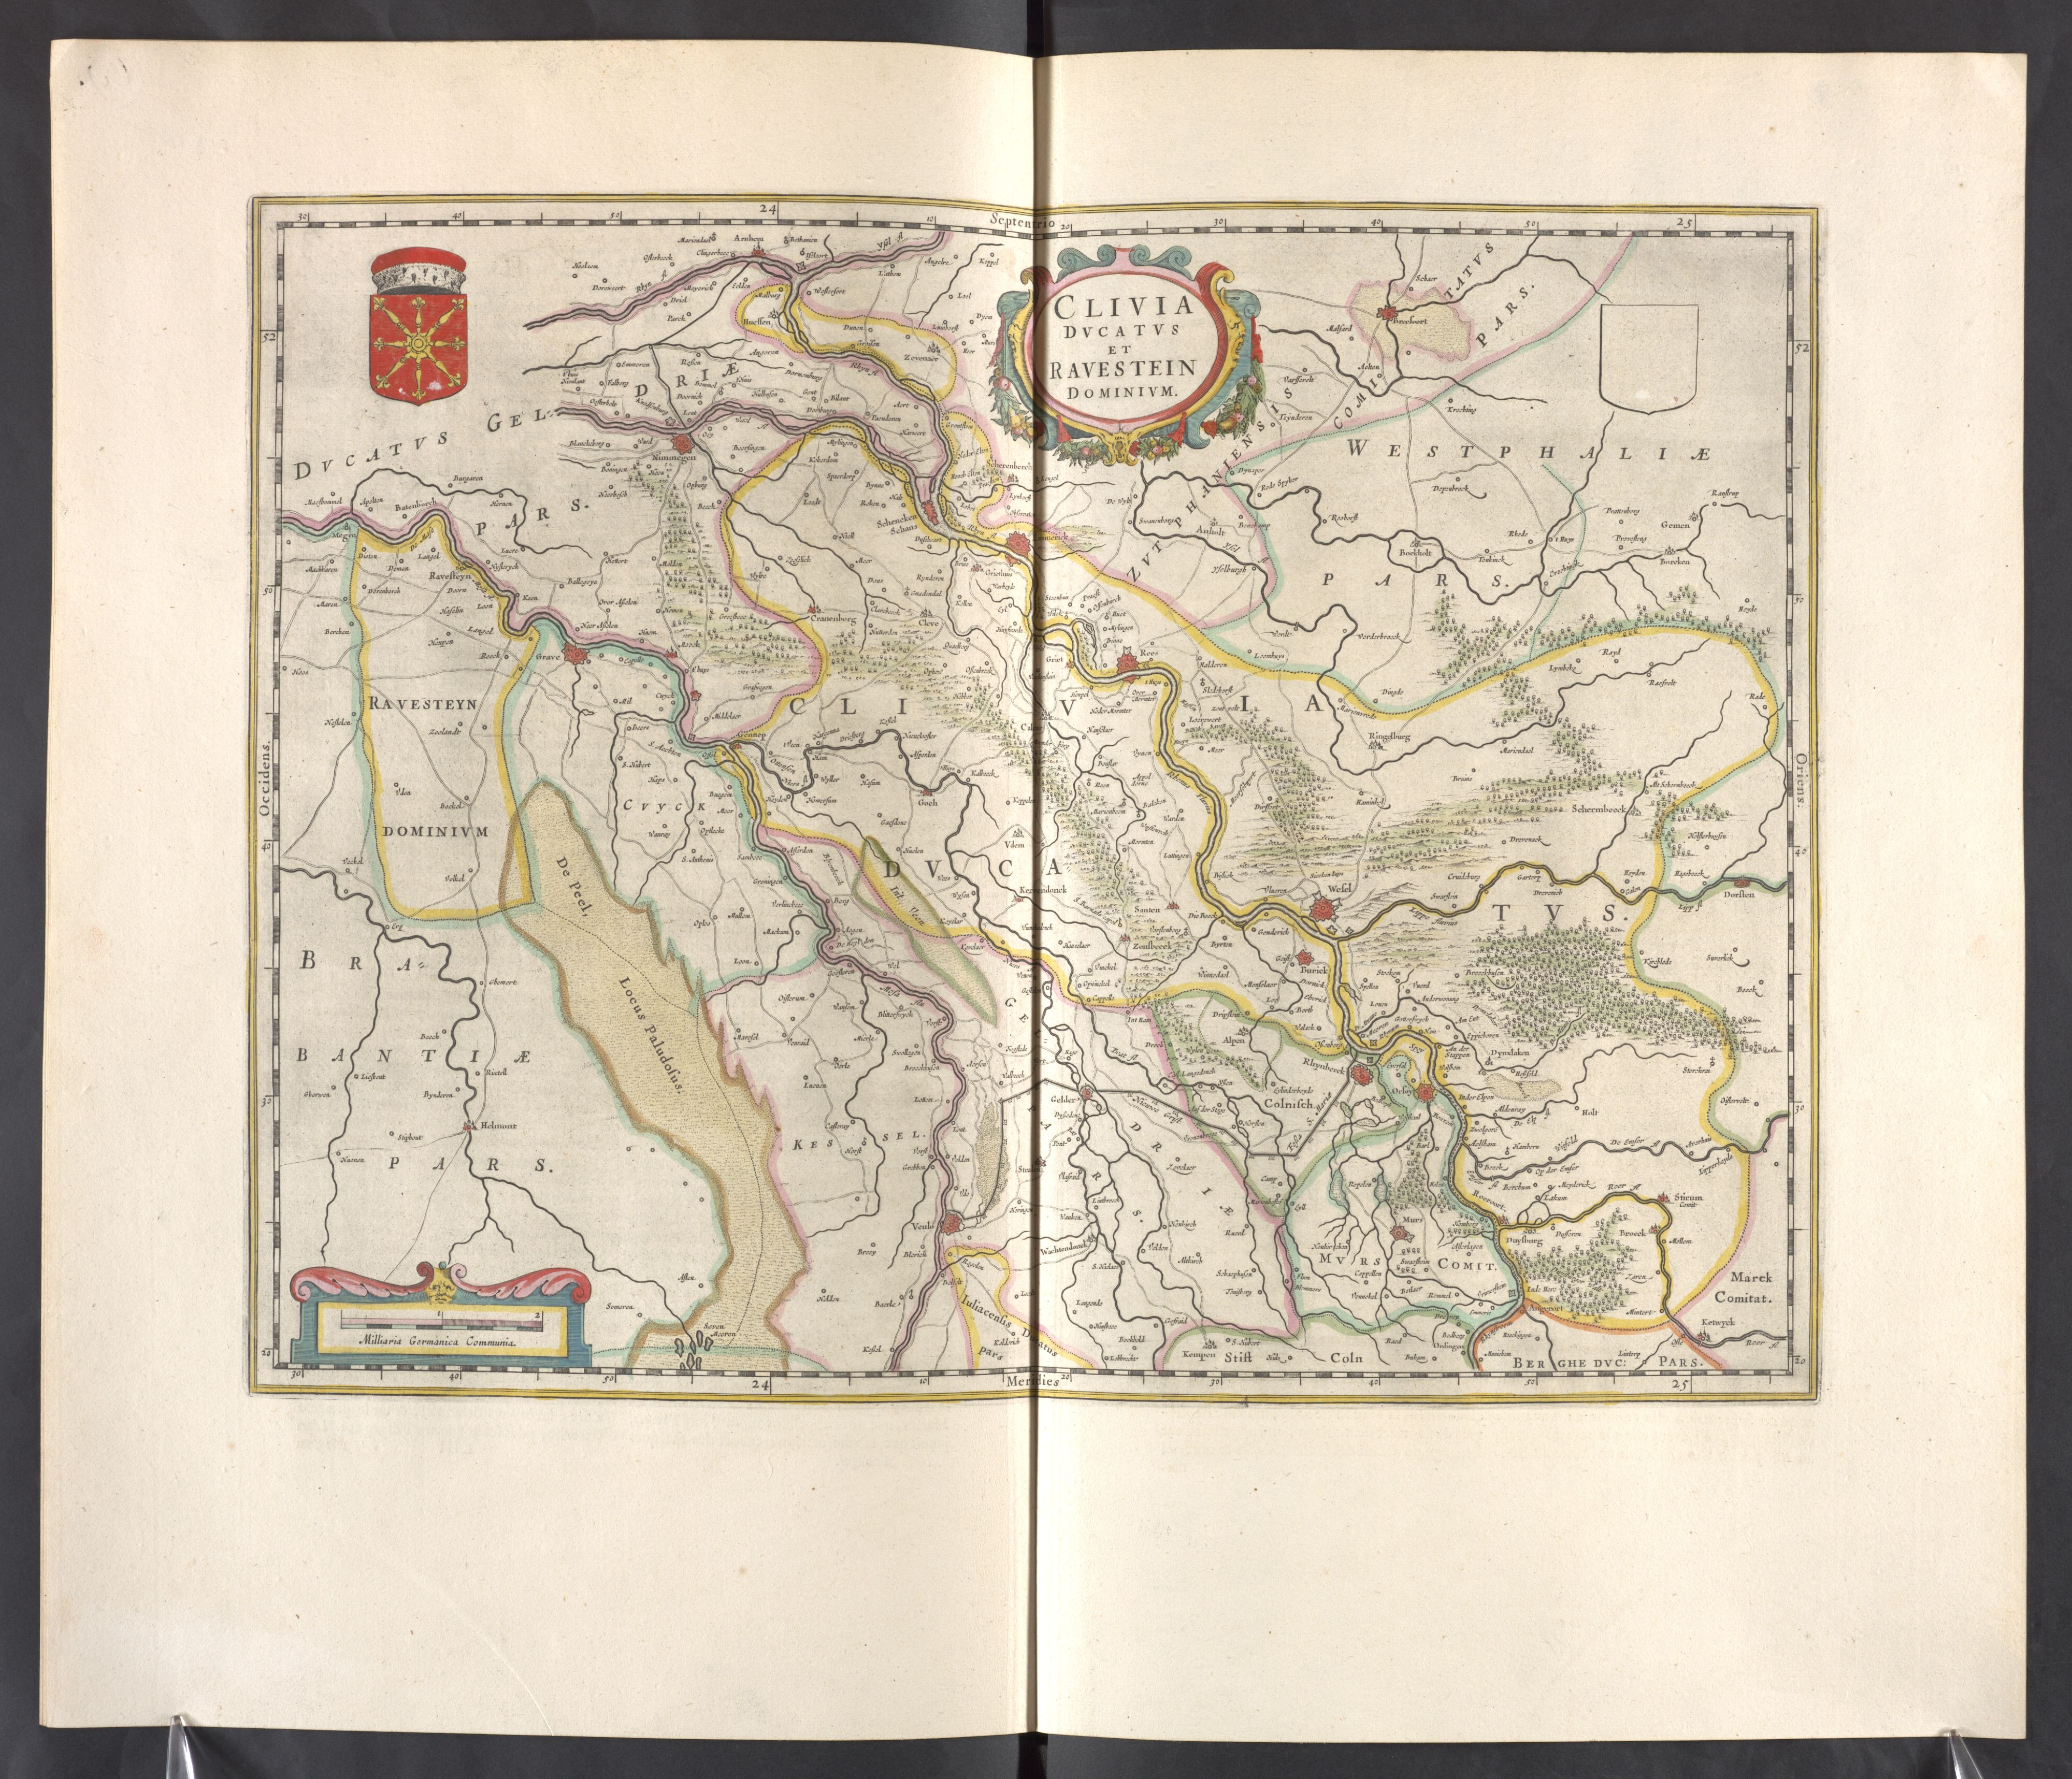 Map69.File Clivia Dvcatvs Et Ravenstein Dominivm Atlas Maior Vol 3 Map